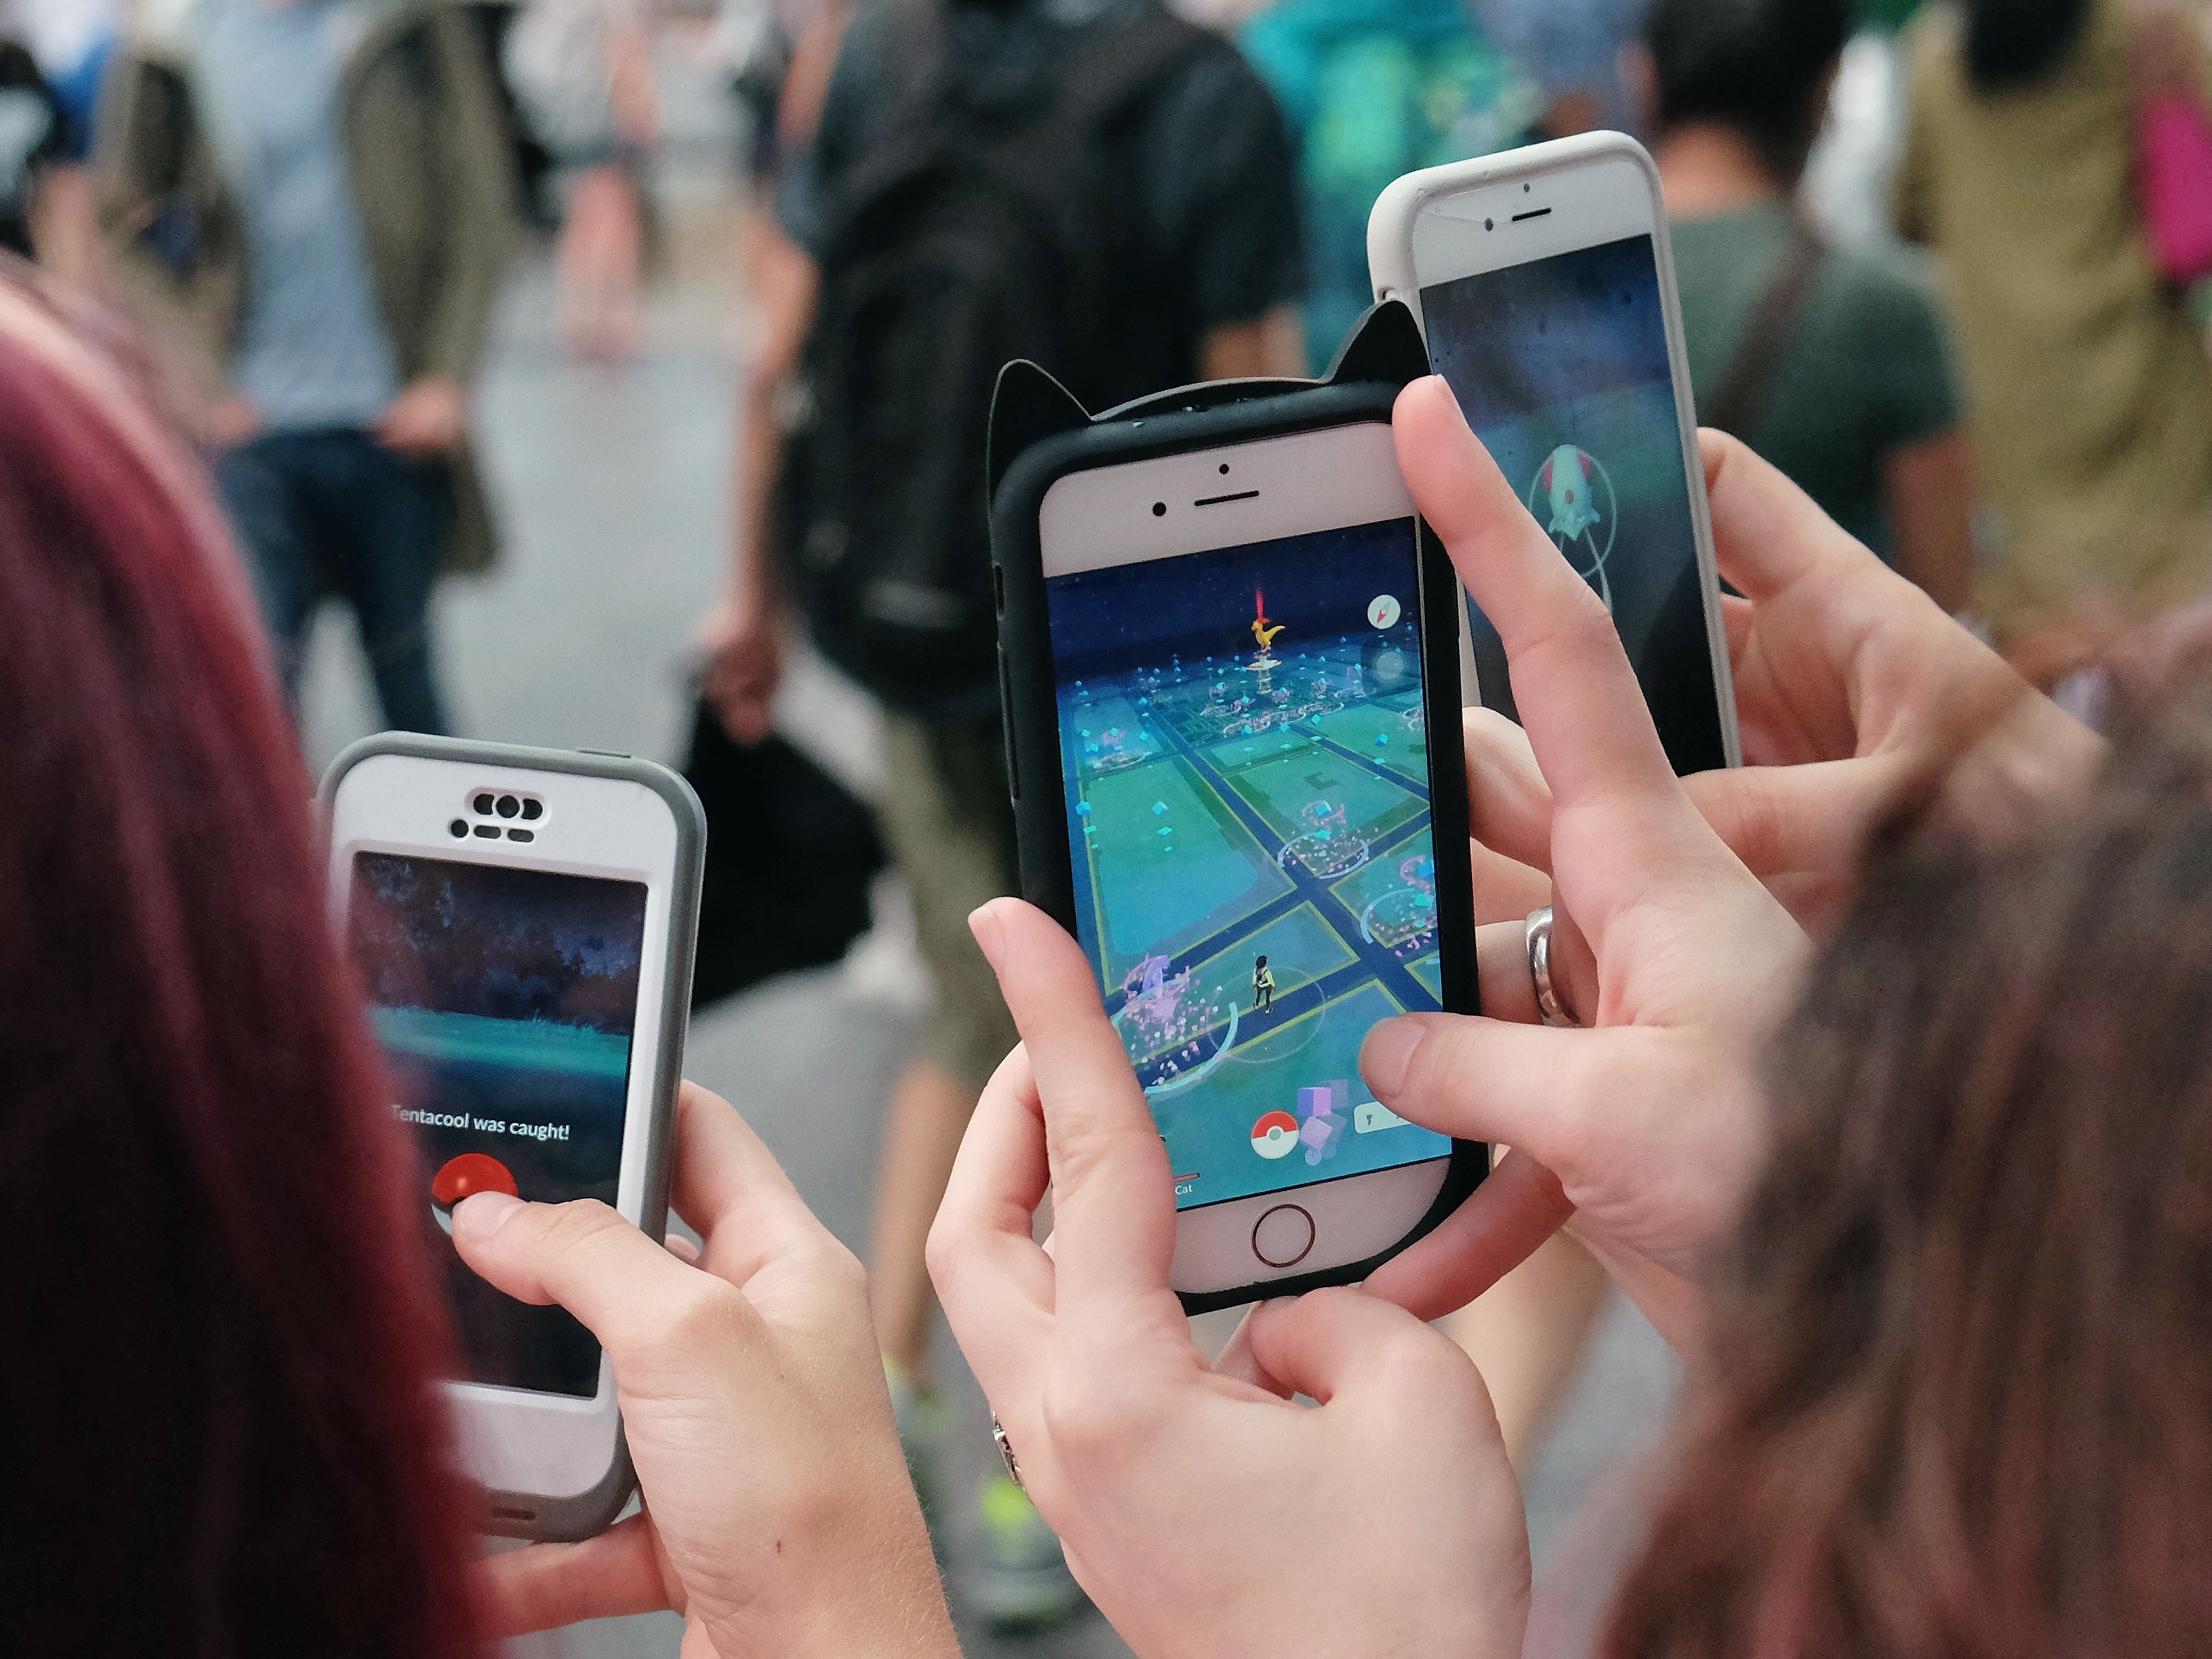 People play Pokémon Go in New York City on July 25. The New York governor's ban on playing the game will apply to nearly 3,000 sex offenders currently on parole. Mike Coppola/Getty Images